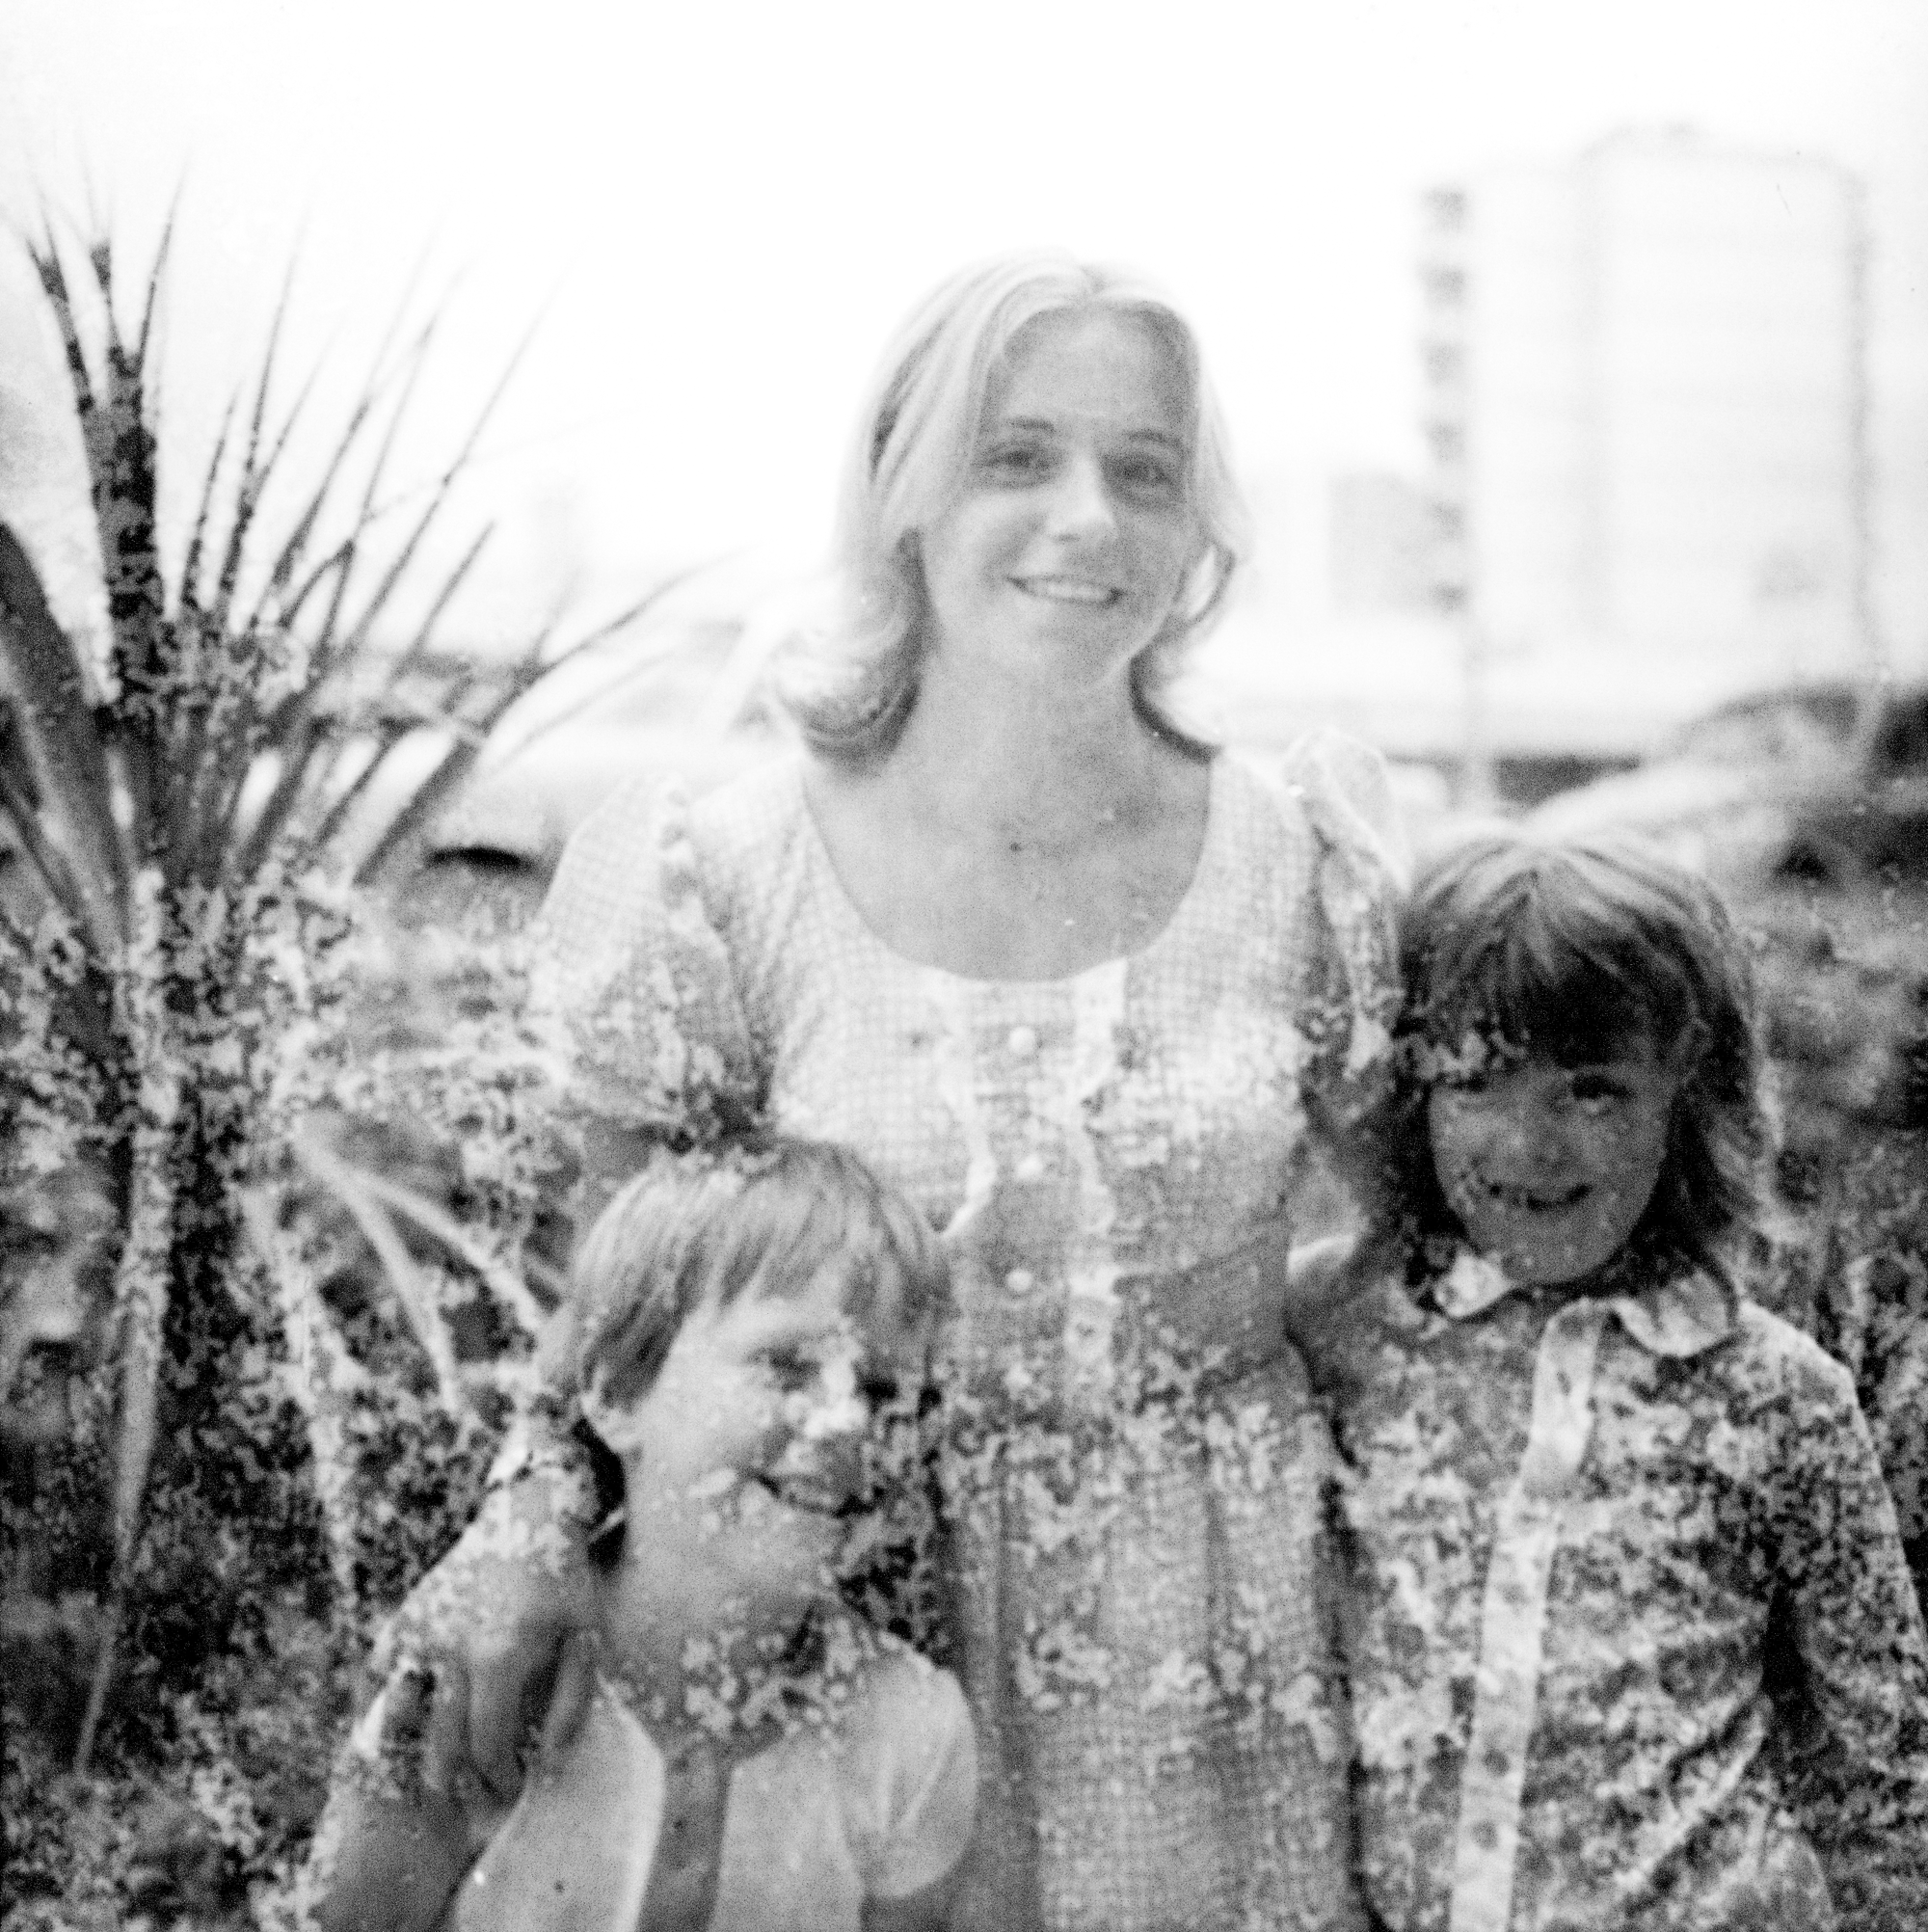 Image Description: What seems to be a family photo, we have a woman (possibly the mother), with two young boys. Boy (left) is smiling/laughing looking towards the camera, the woman (middle) is smiling casually looking towards the camera, with her hands around the young boys, and the second boy (right) is smiling wide looking to the left of the camera. Behind the people we have some bushed/plants, and behinds those in the distance there is cars, as well as a block of flats or offices on the far right.